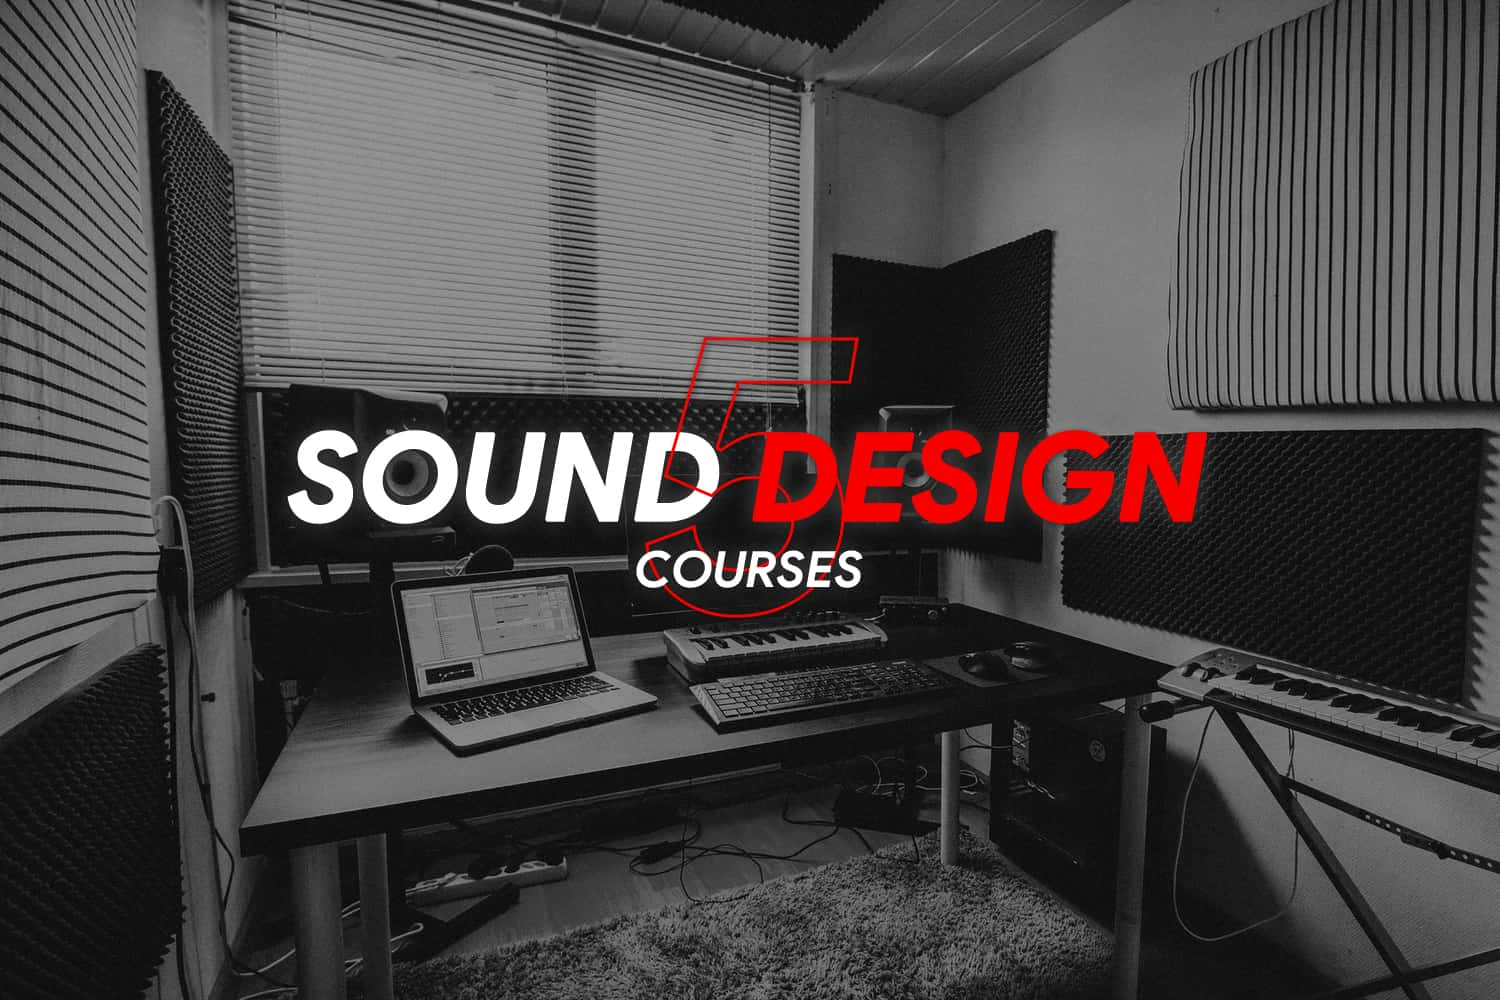 Five sound design courses for EDM producers